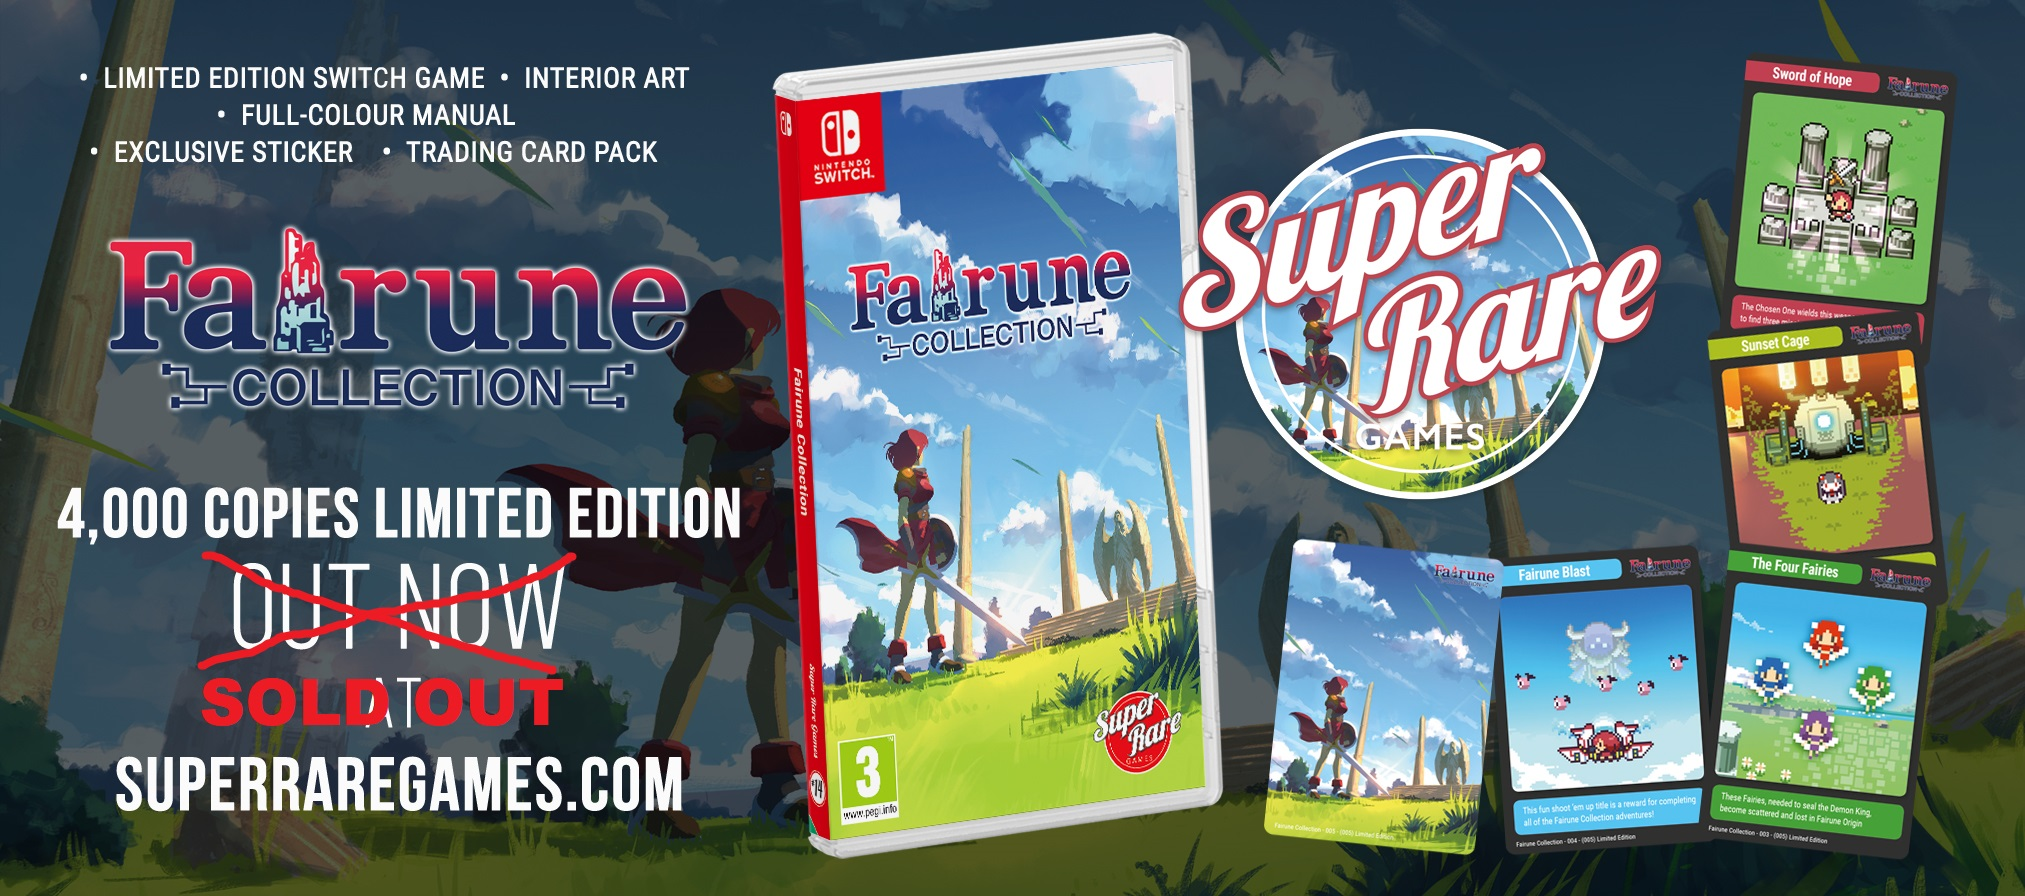 Enter into Dtoid Contest for a chance to win a Switch physical copy of Fairune Collection from Super Rare Games! Giveaway Image